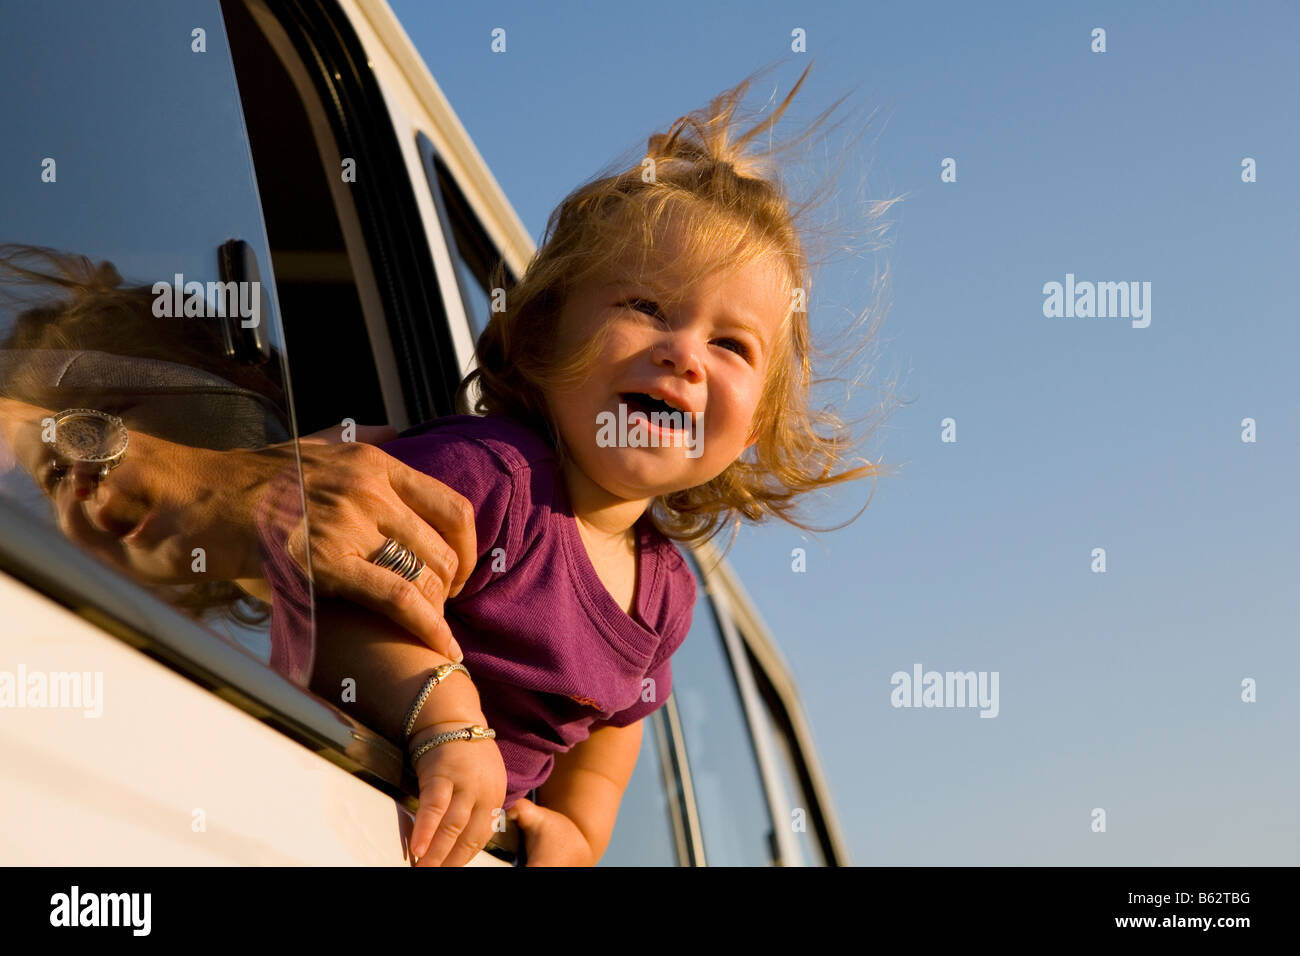 closeup of a baby girl looking out of a car window and